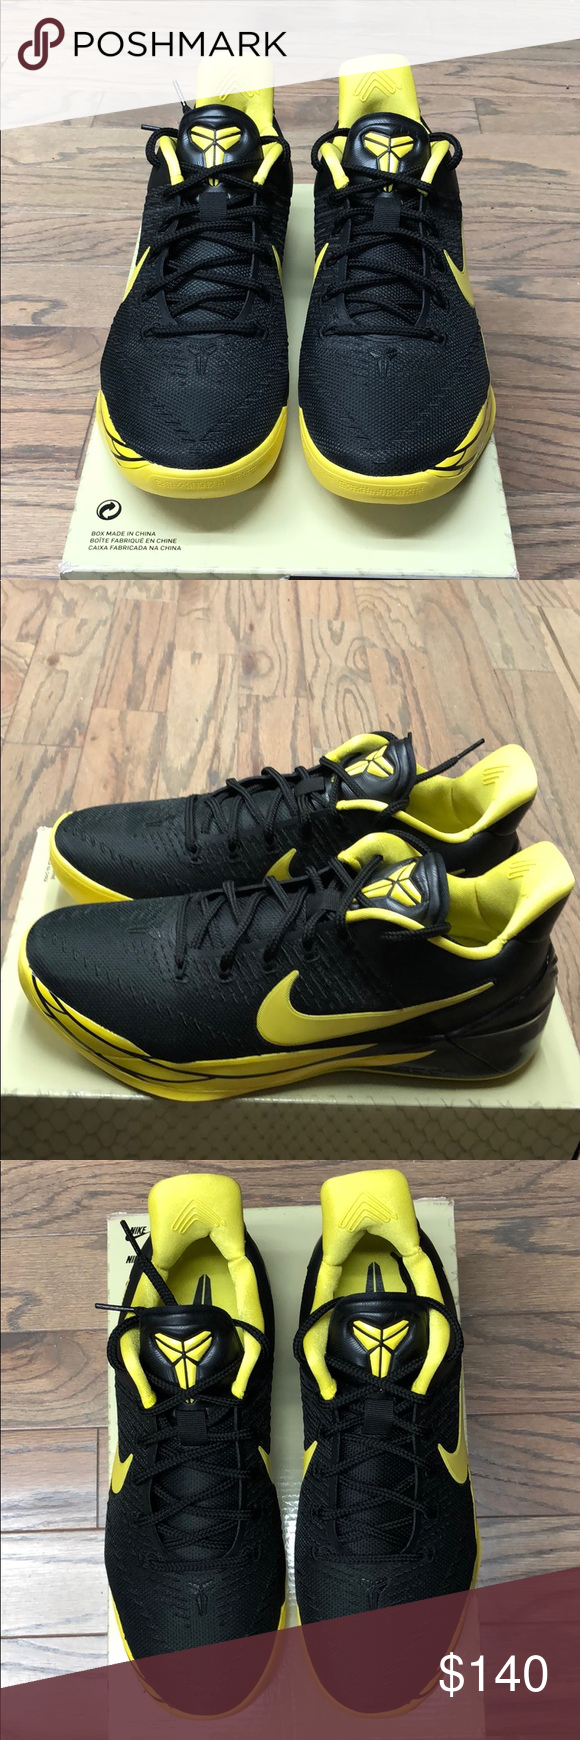 "70dff735ec14 Kobe A.D. Oregon Brand New Kobe A.D. ""Oregon"" Size 10"